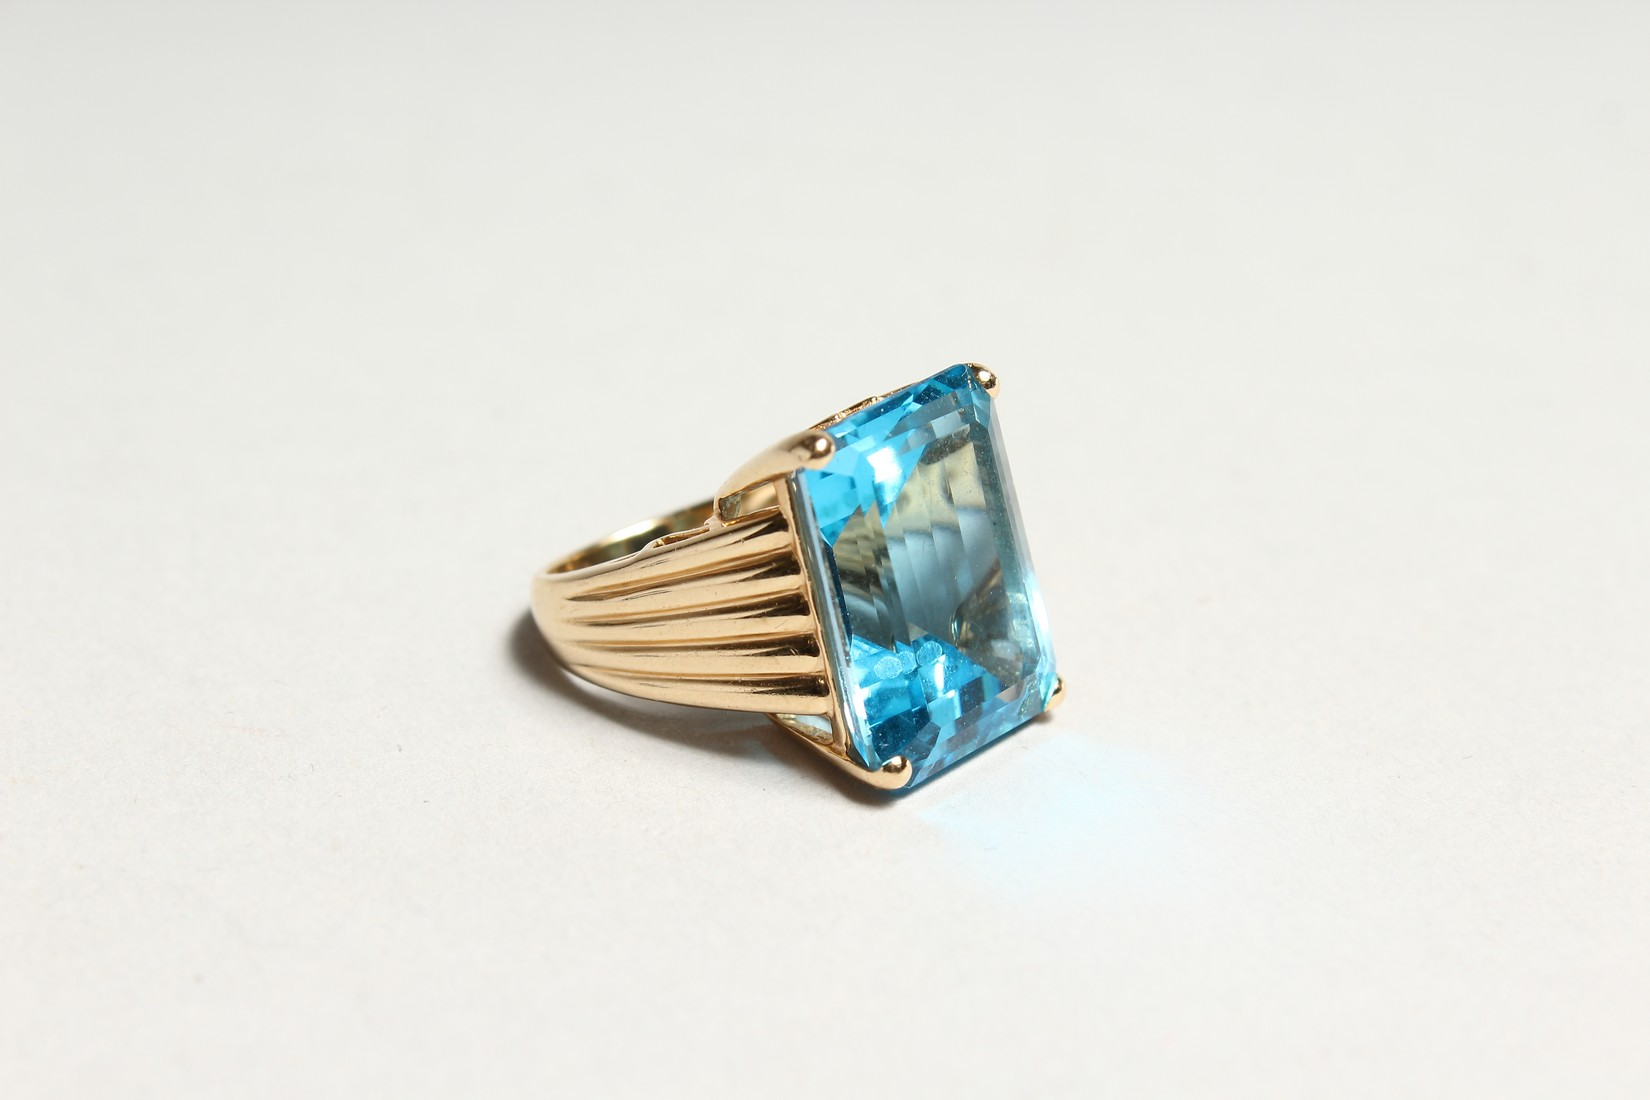 A GOOD 18CT GOLD LARGE TOPAZ SET RING. - Image 3 of 6